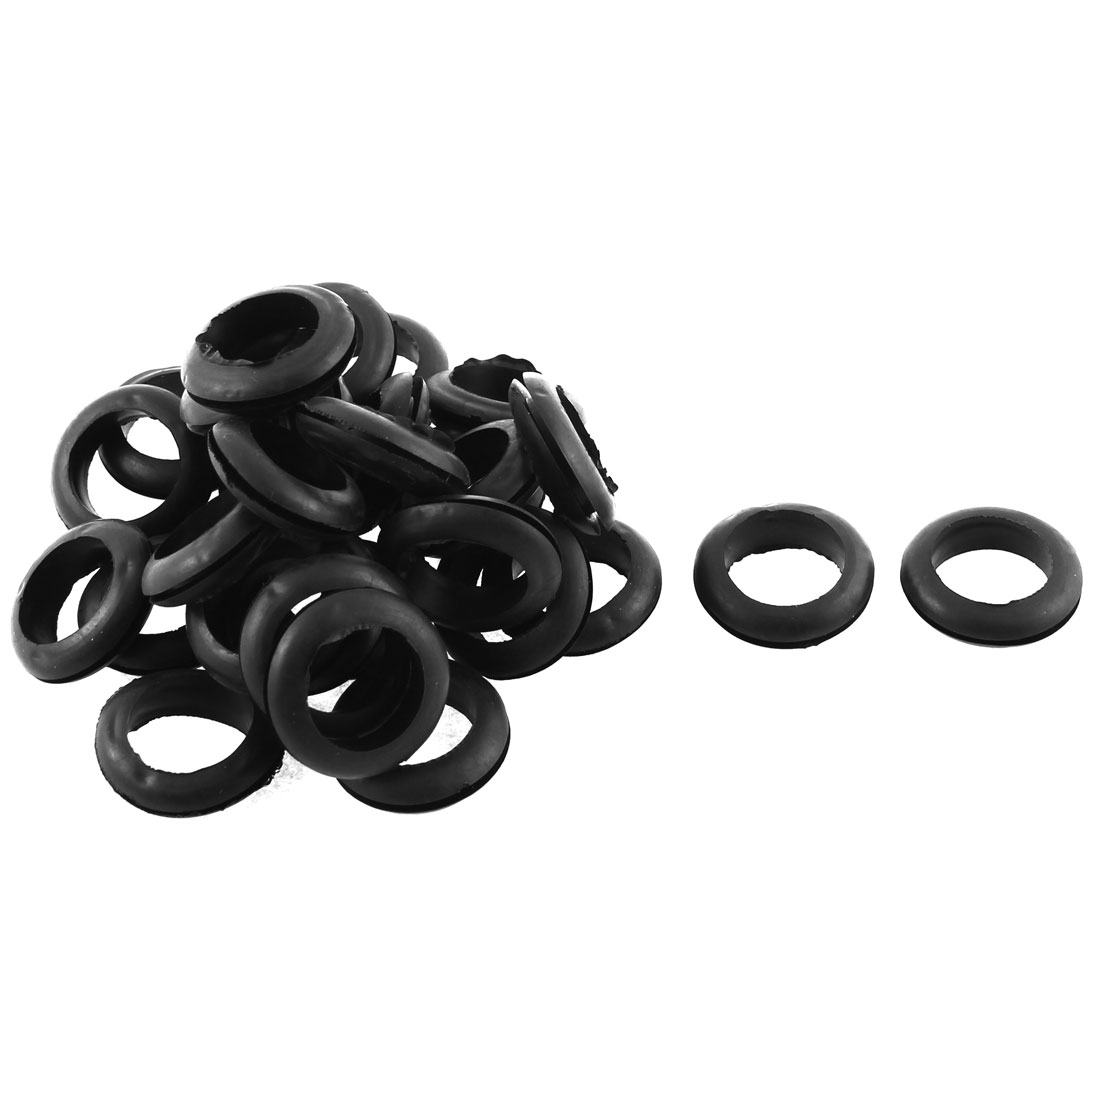 30Pcs Black Rubber Wiring Grommets Gasket Ring Cable Protector for 20mm Wire - image 1 of 1